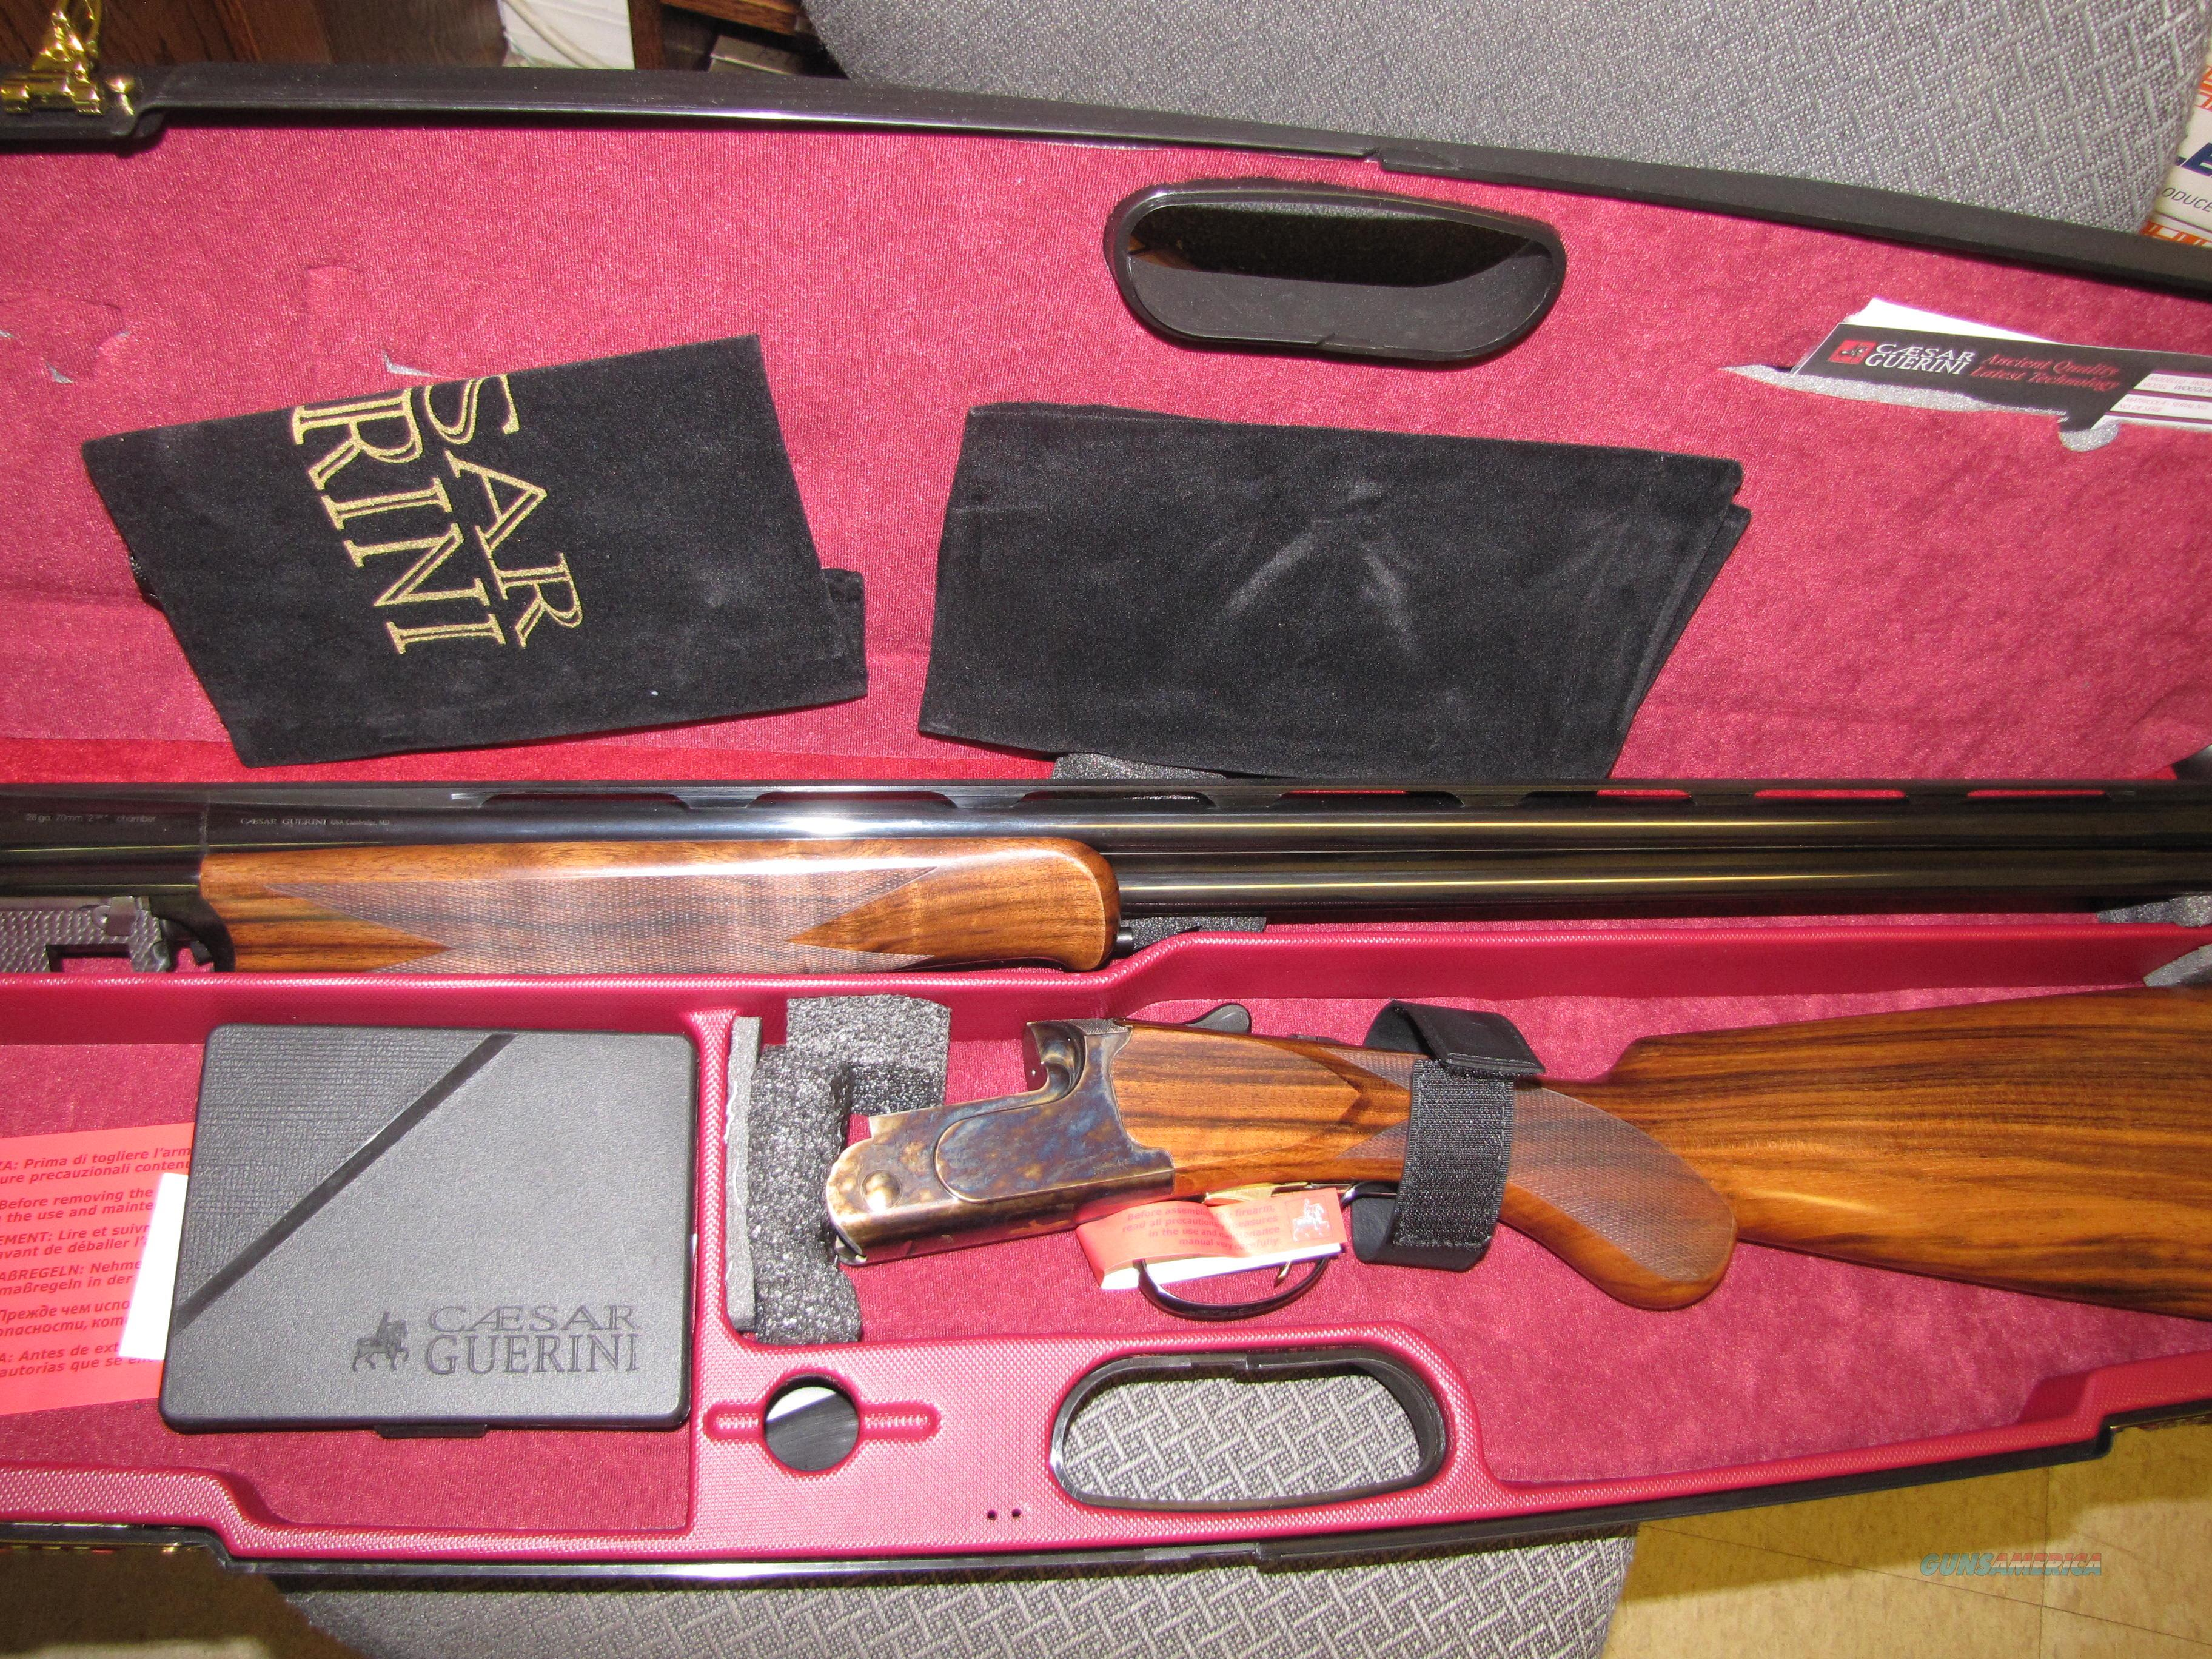 Beautiful Woodlander 28 gauge with 28 inch barrels &  case hardened finish   Guns > Shotguns > Guerini Shotuns